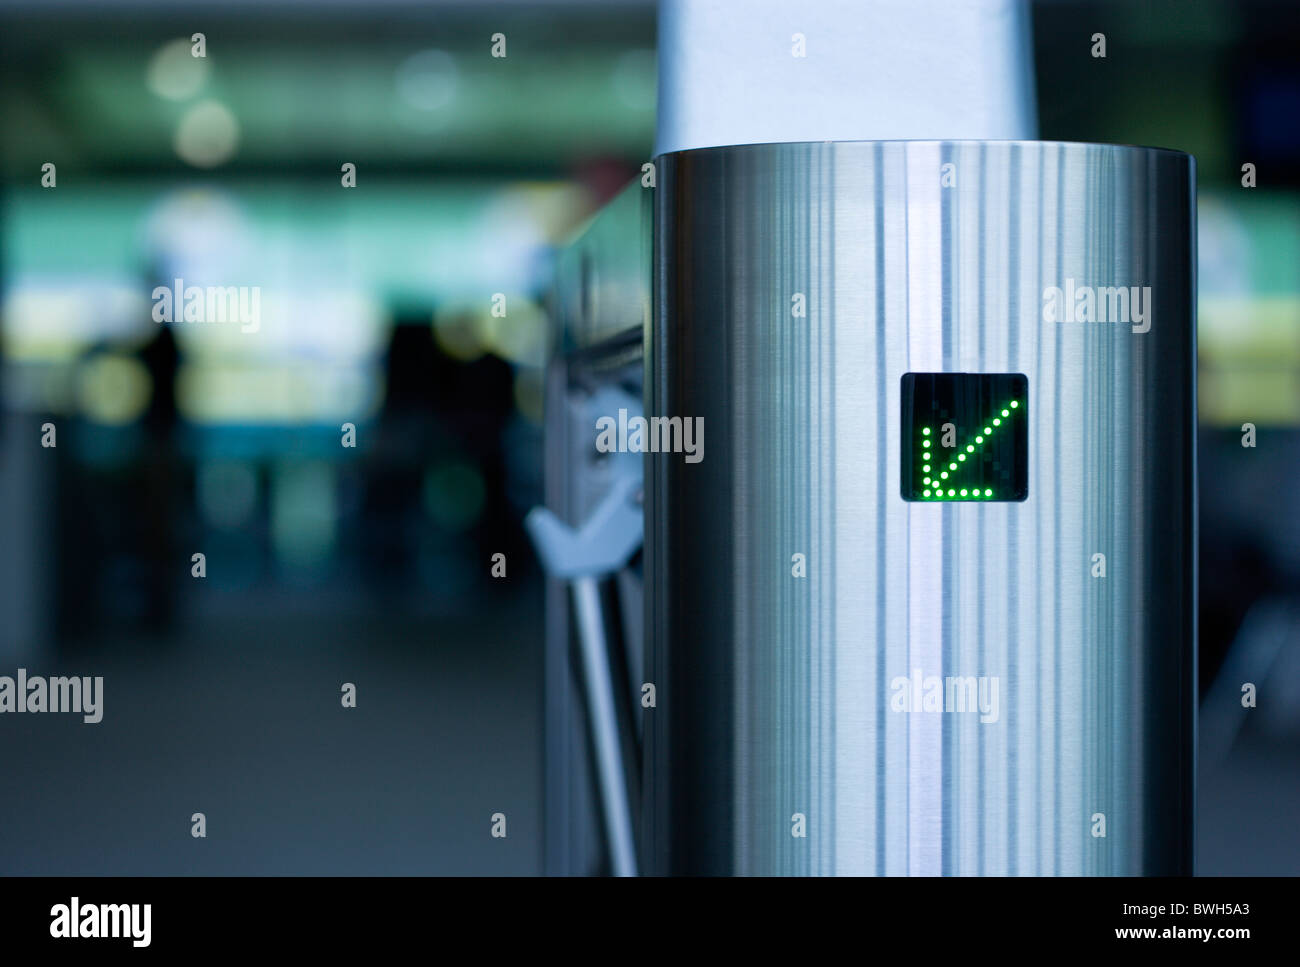 Ireland County Dublin City Ballsbridge Lansdowne Road Aviva Stadium Stainless steel Turnstile at entrance with green - Stock Image